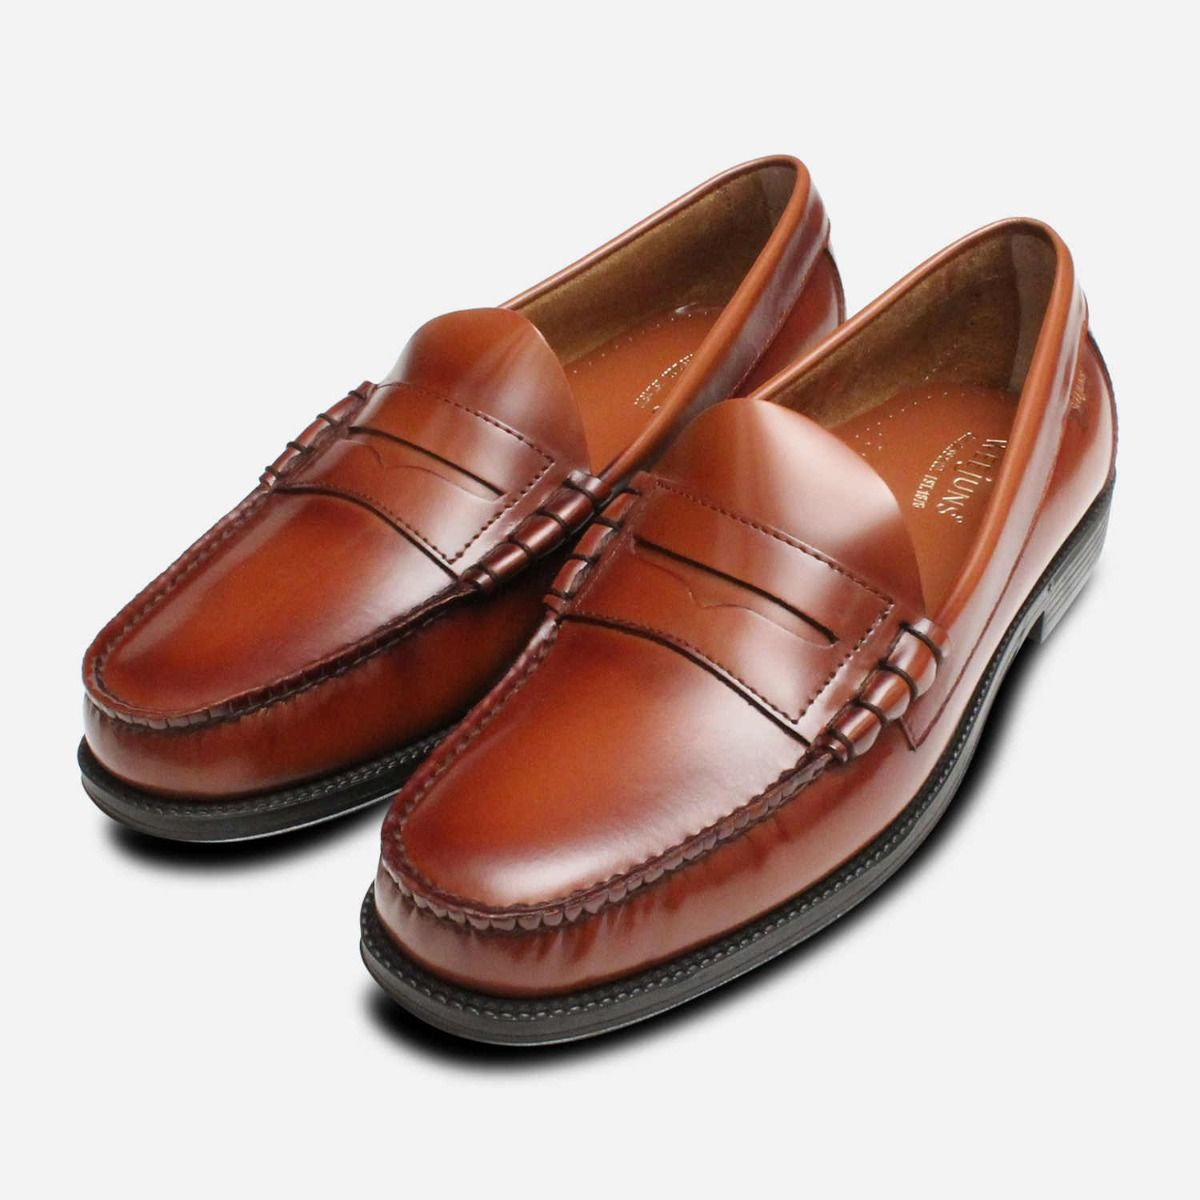 21d66782c85 Larson II Brown Penny Loafer Shoes by GH Bass Rubber Sole